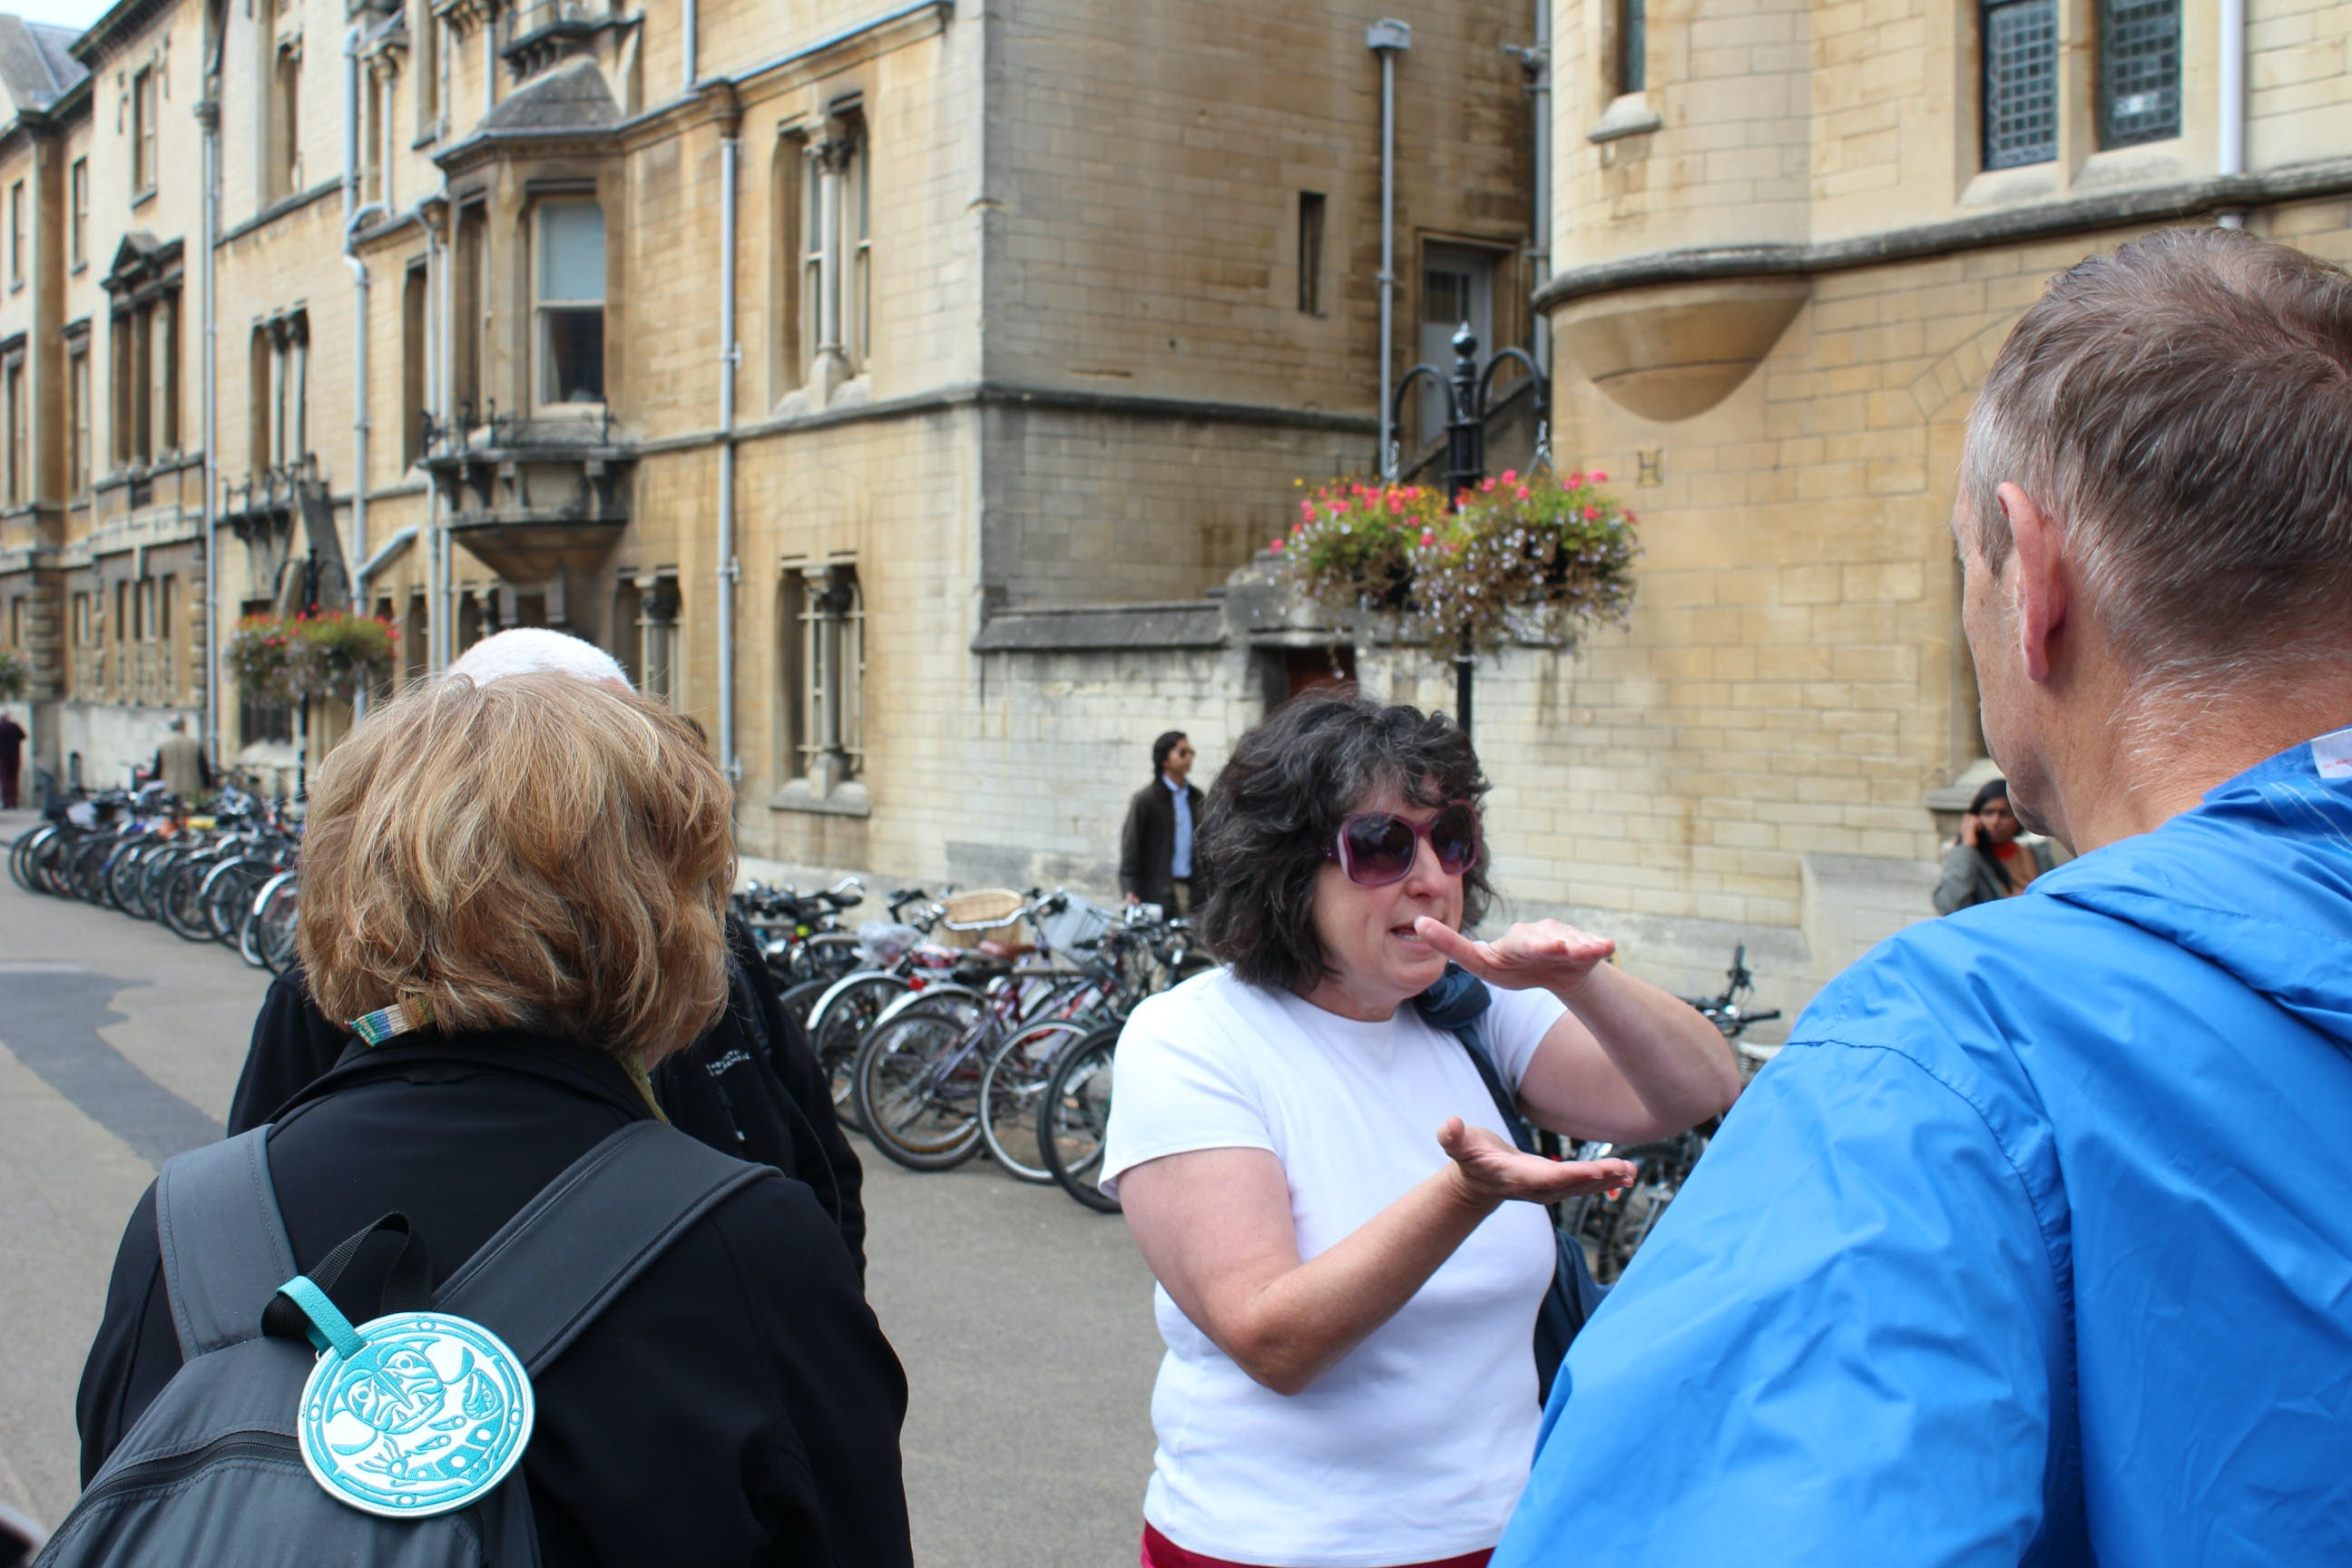 Inspector Morse, Lewis and Endeavour filming locations tour of Oxford